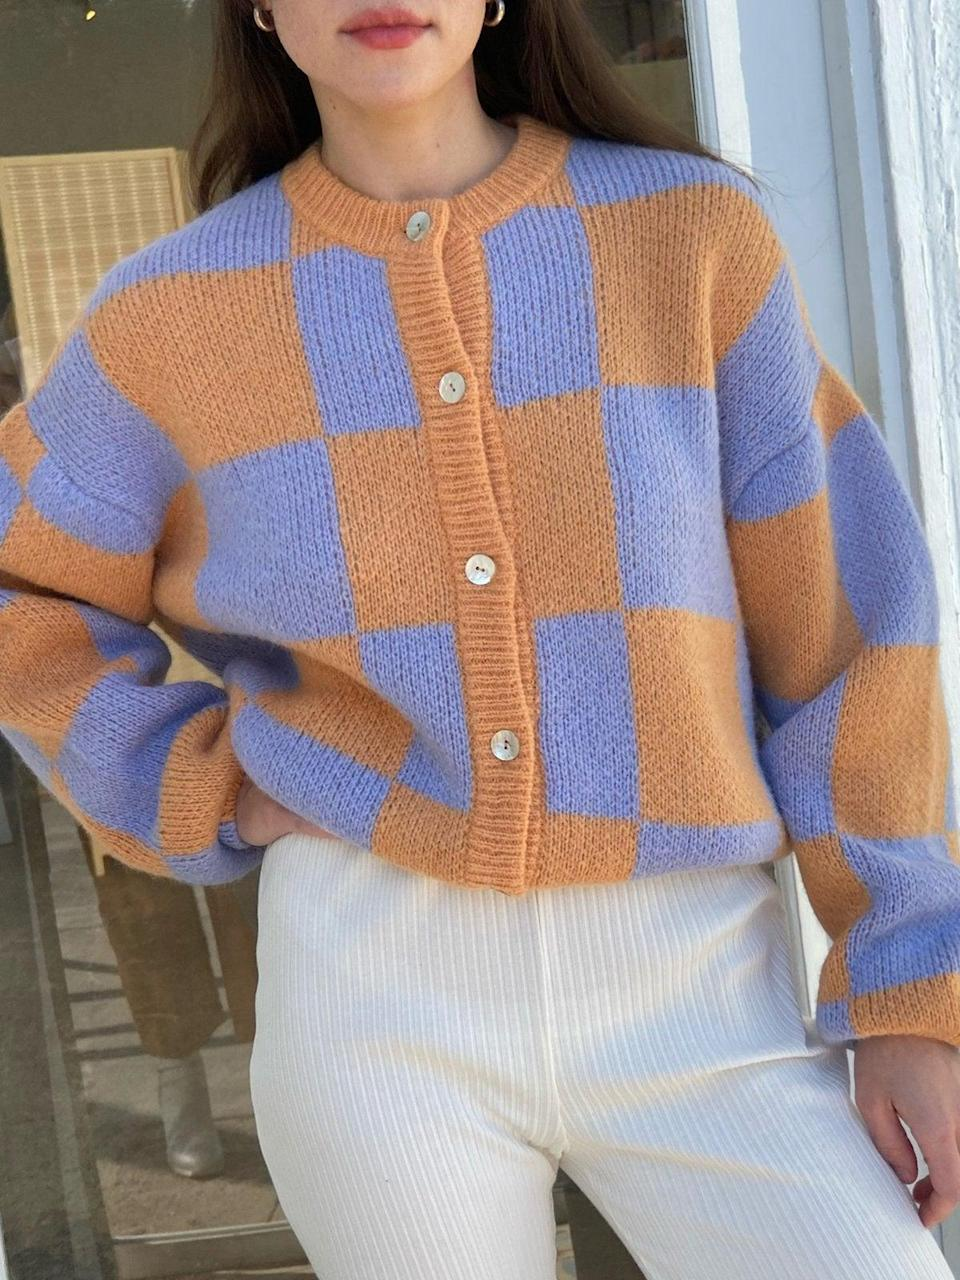 """<br><br><strong>Stine Goya</strong> Ash Cardigan Sweater, $, available at <a href=""""https://go.skimresources.com/?id=30283X879131&url=https%3A%2F%2Flisasaysgah.com%2Fcollections%2Fsweaters%2Fproducts%2Fash-cardigan-sweater-1213-checks-1"""" rel=""""nofollow noopener"""" target=""""_blank"""" data-ylk=""""slk:Lisa Says Gah"""" class=""""link rapid-noclick-resp"""">Lisa Says Gah</a>"""